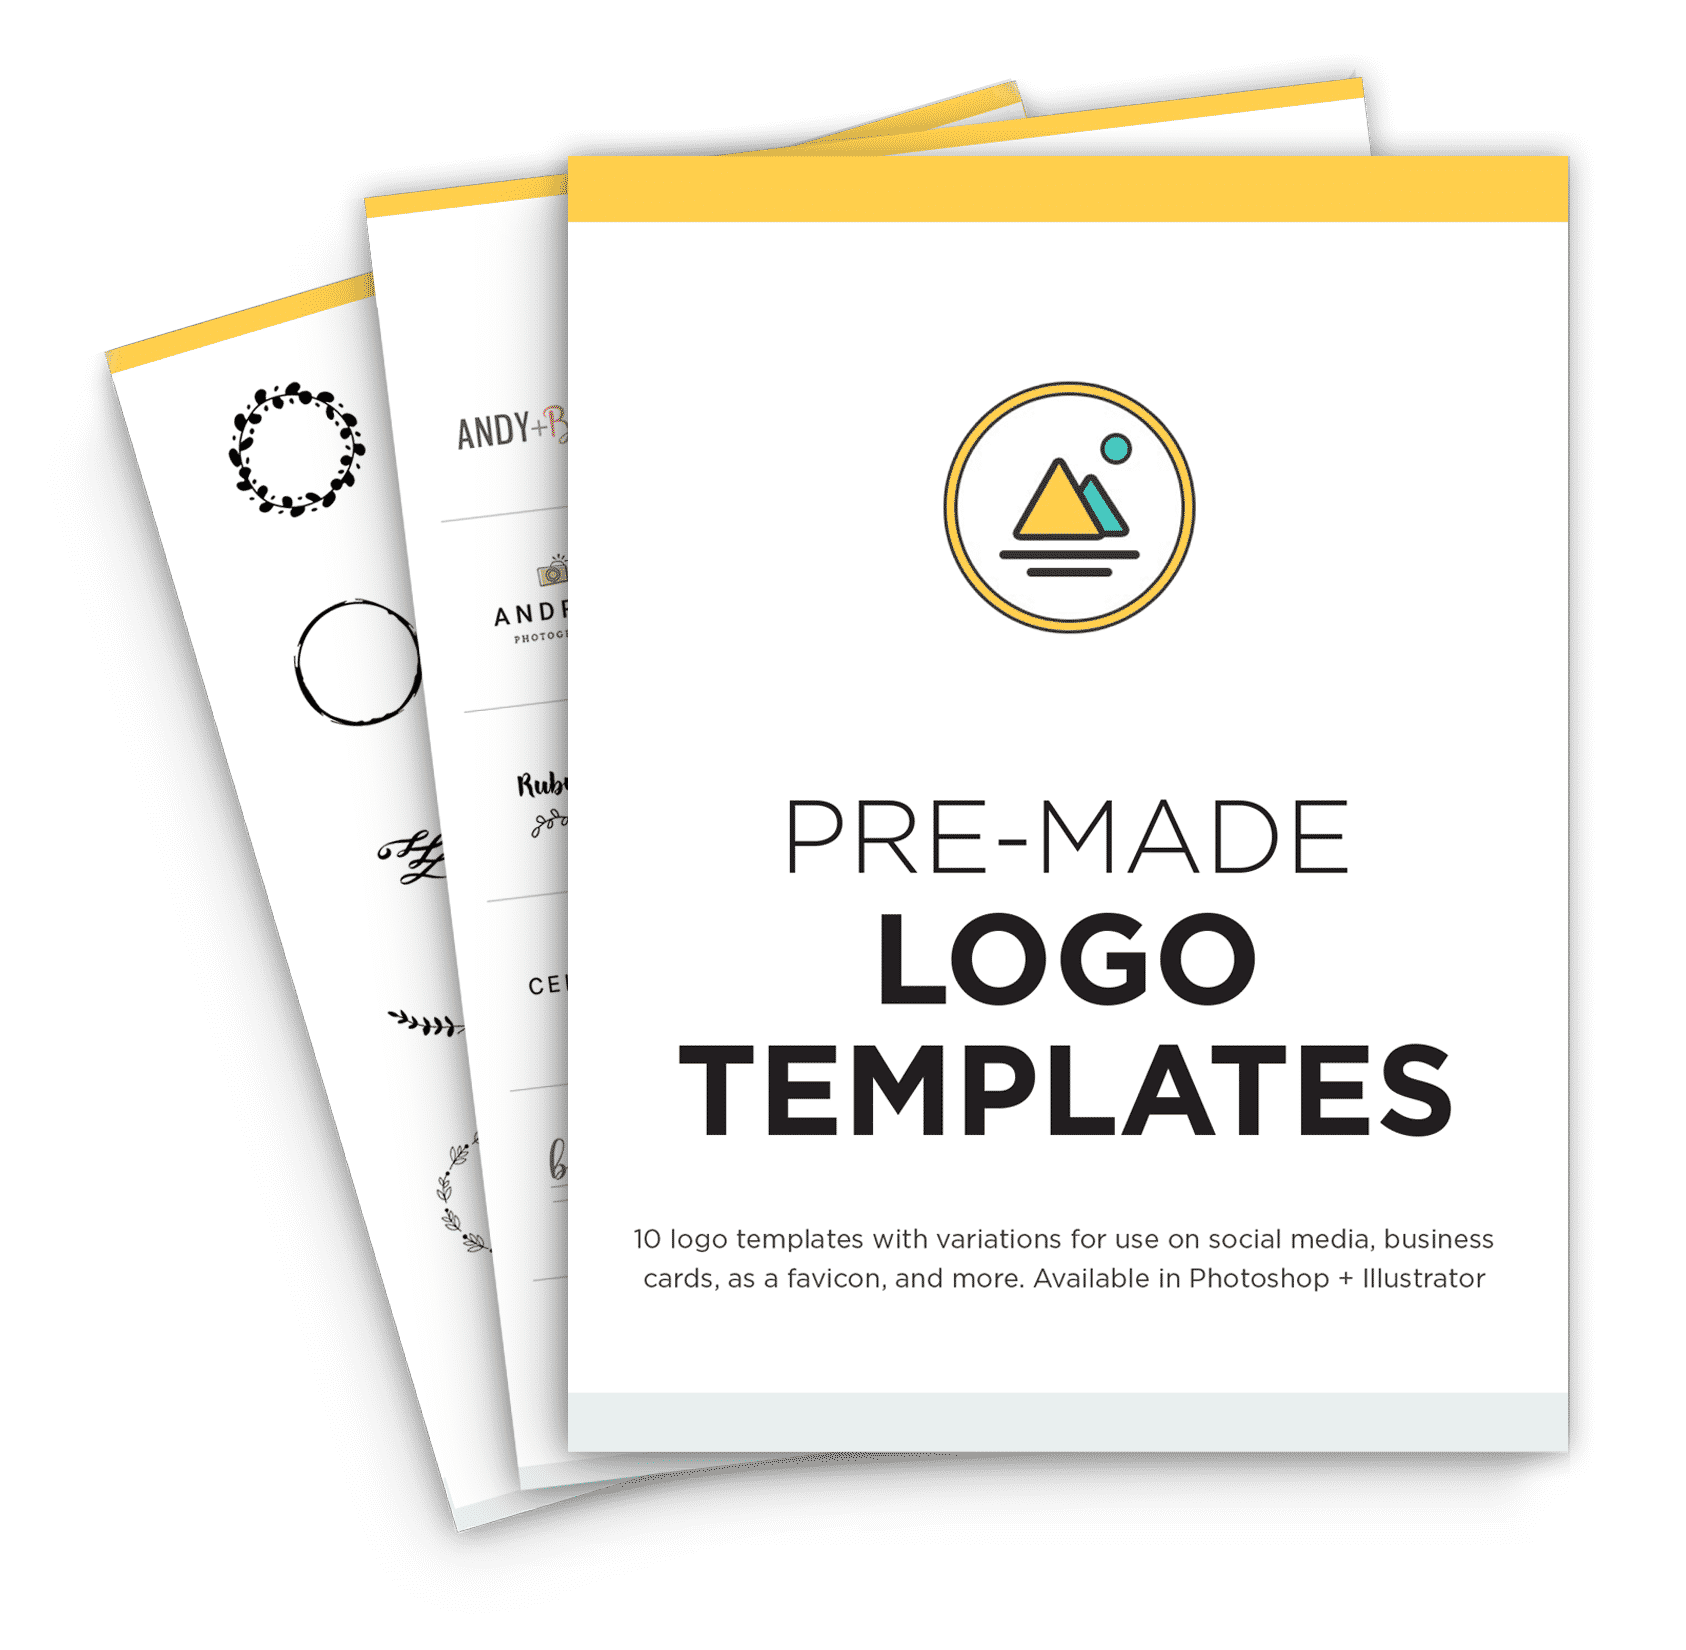 Build My Brand logo templates